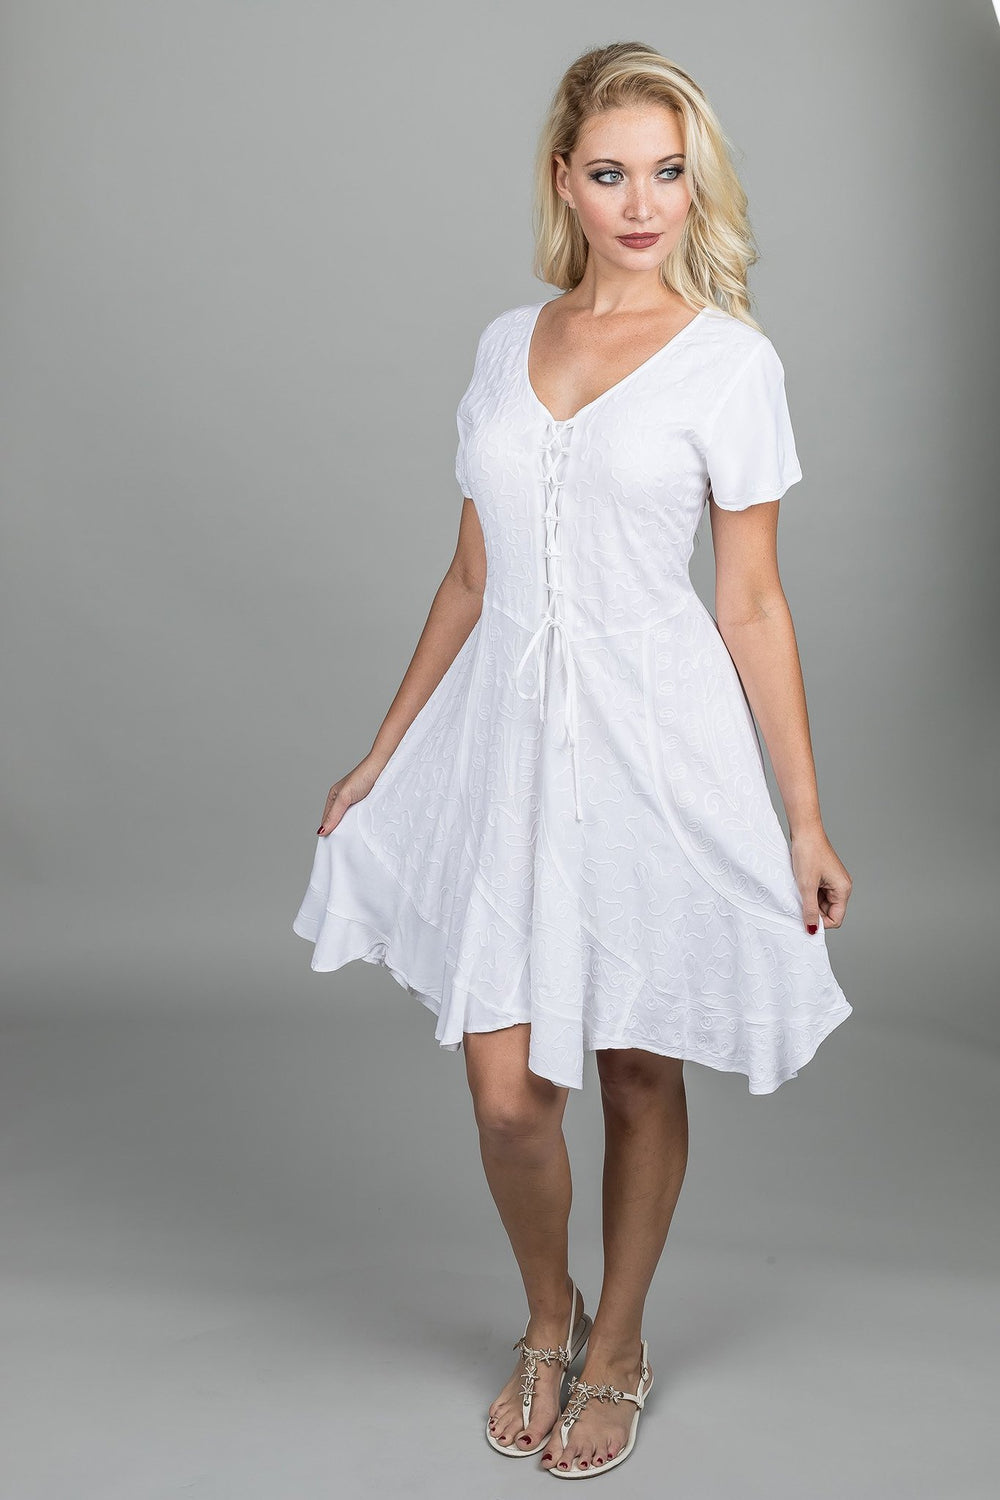 LACE-UP MIDI DRESS-SHORT SLEEVES WHITE